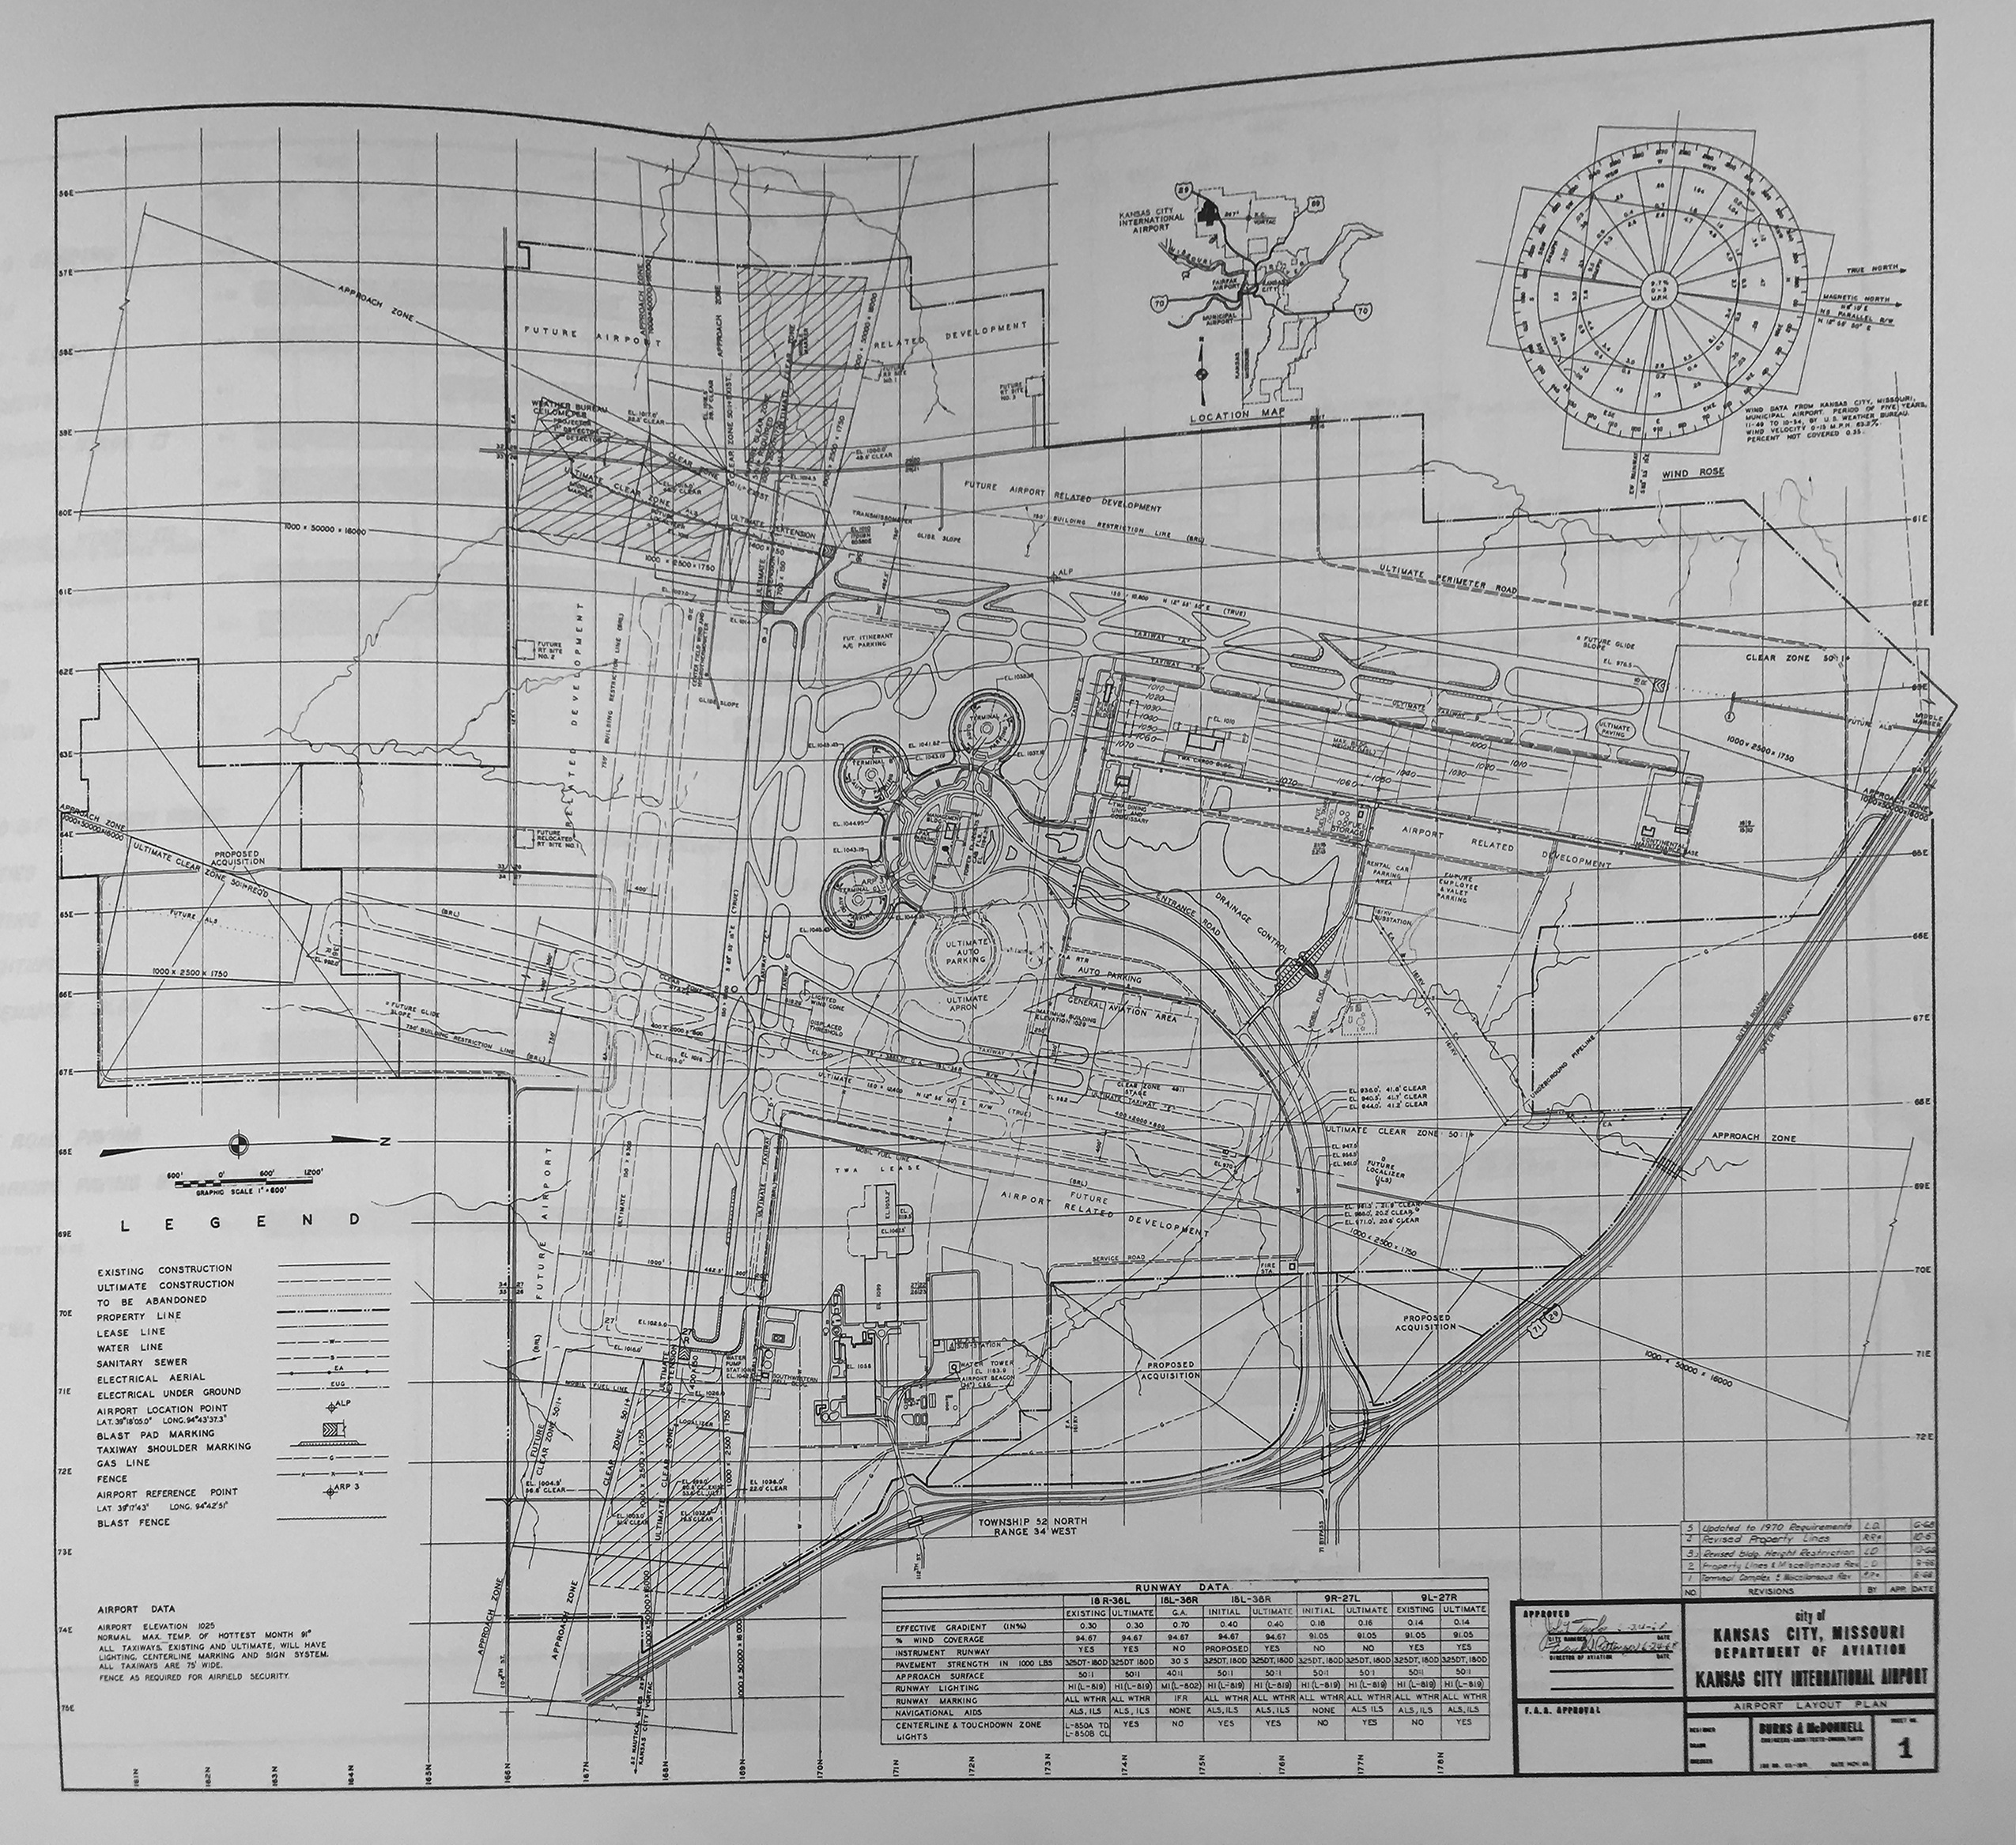 Kansas-City-International-Airport-Layout-Burns-McDonnell